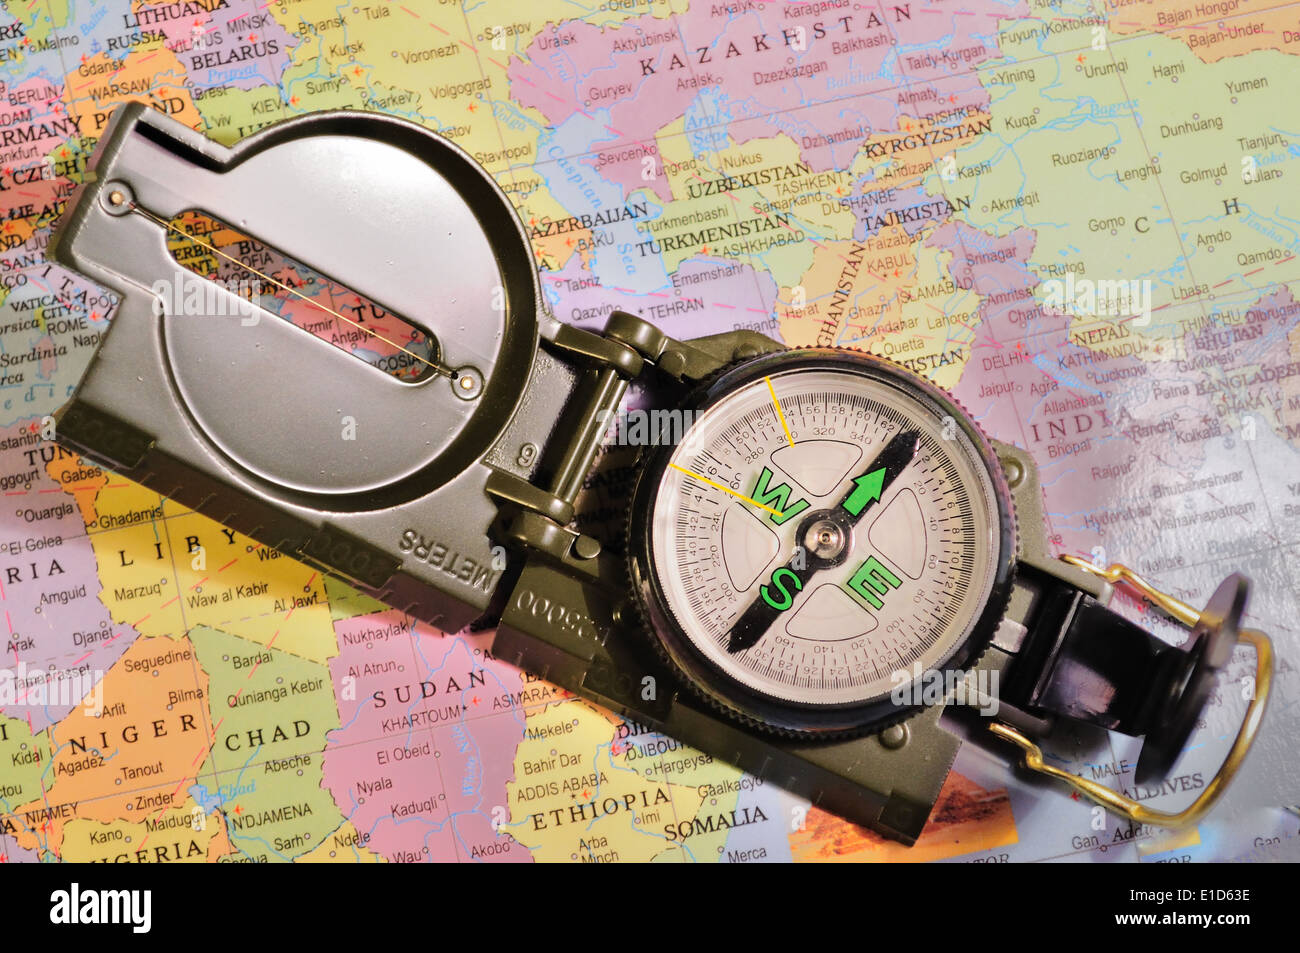 A Magnetic compass on a map of Africa - Stock Image